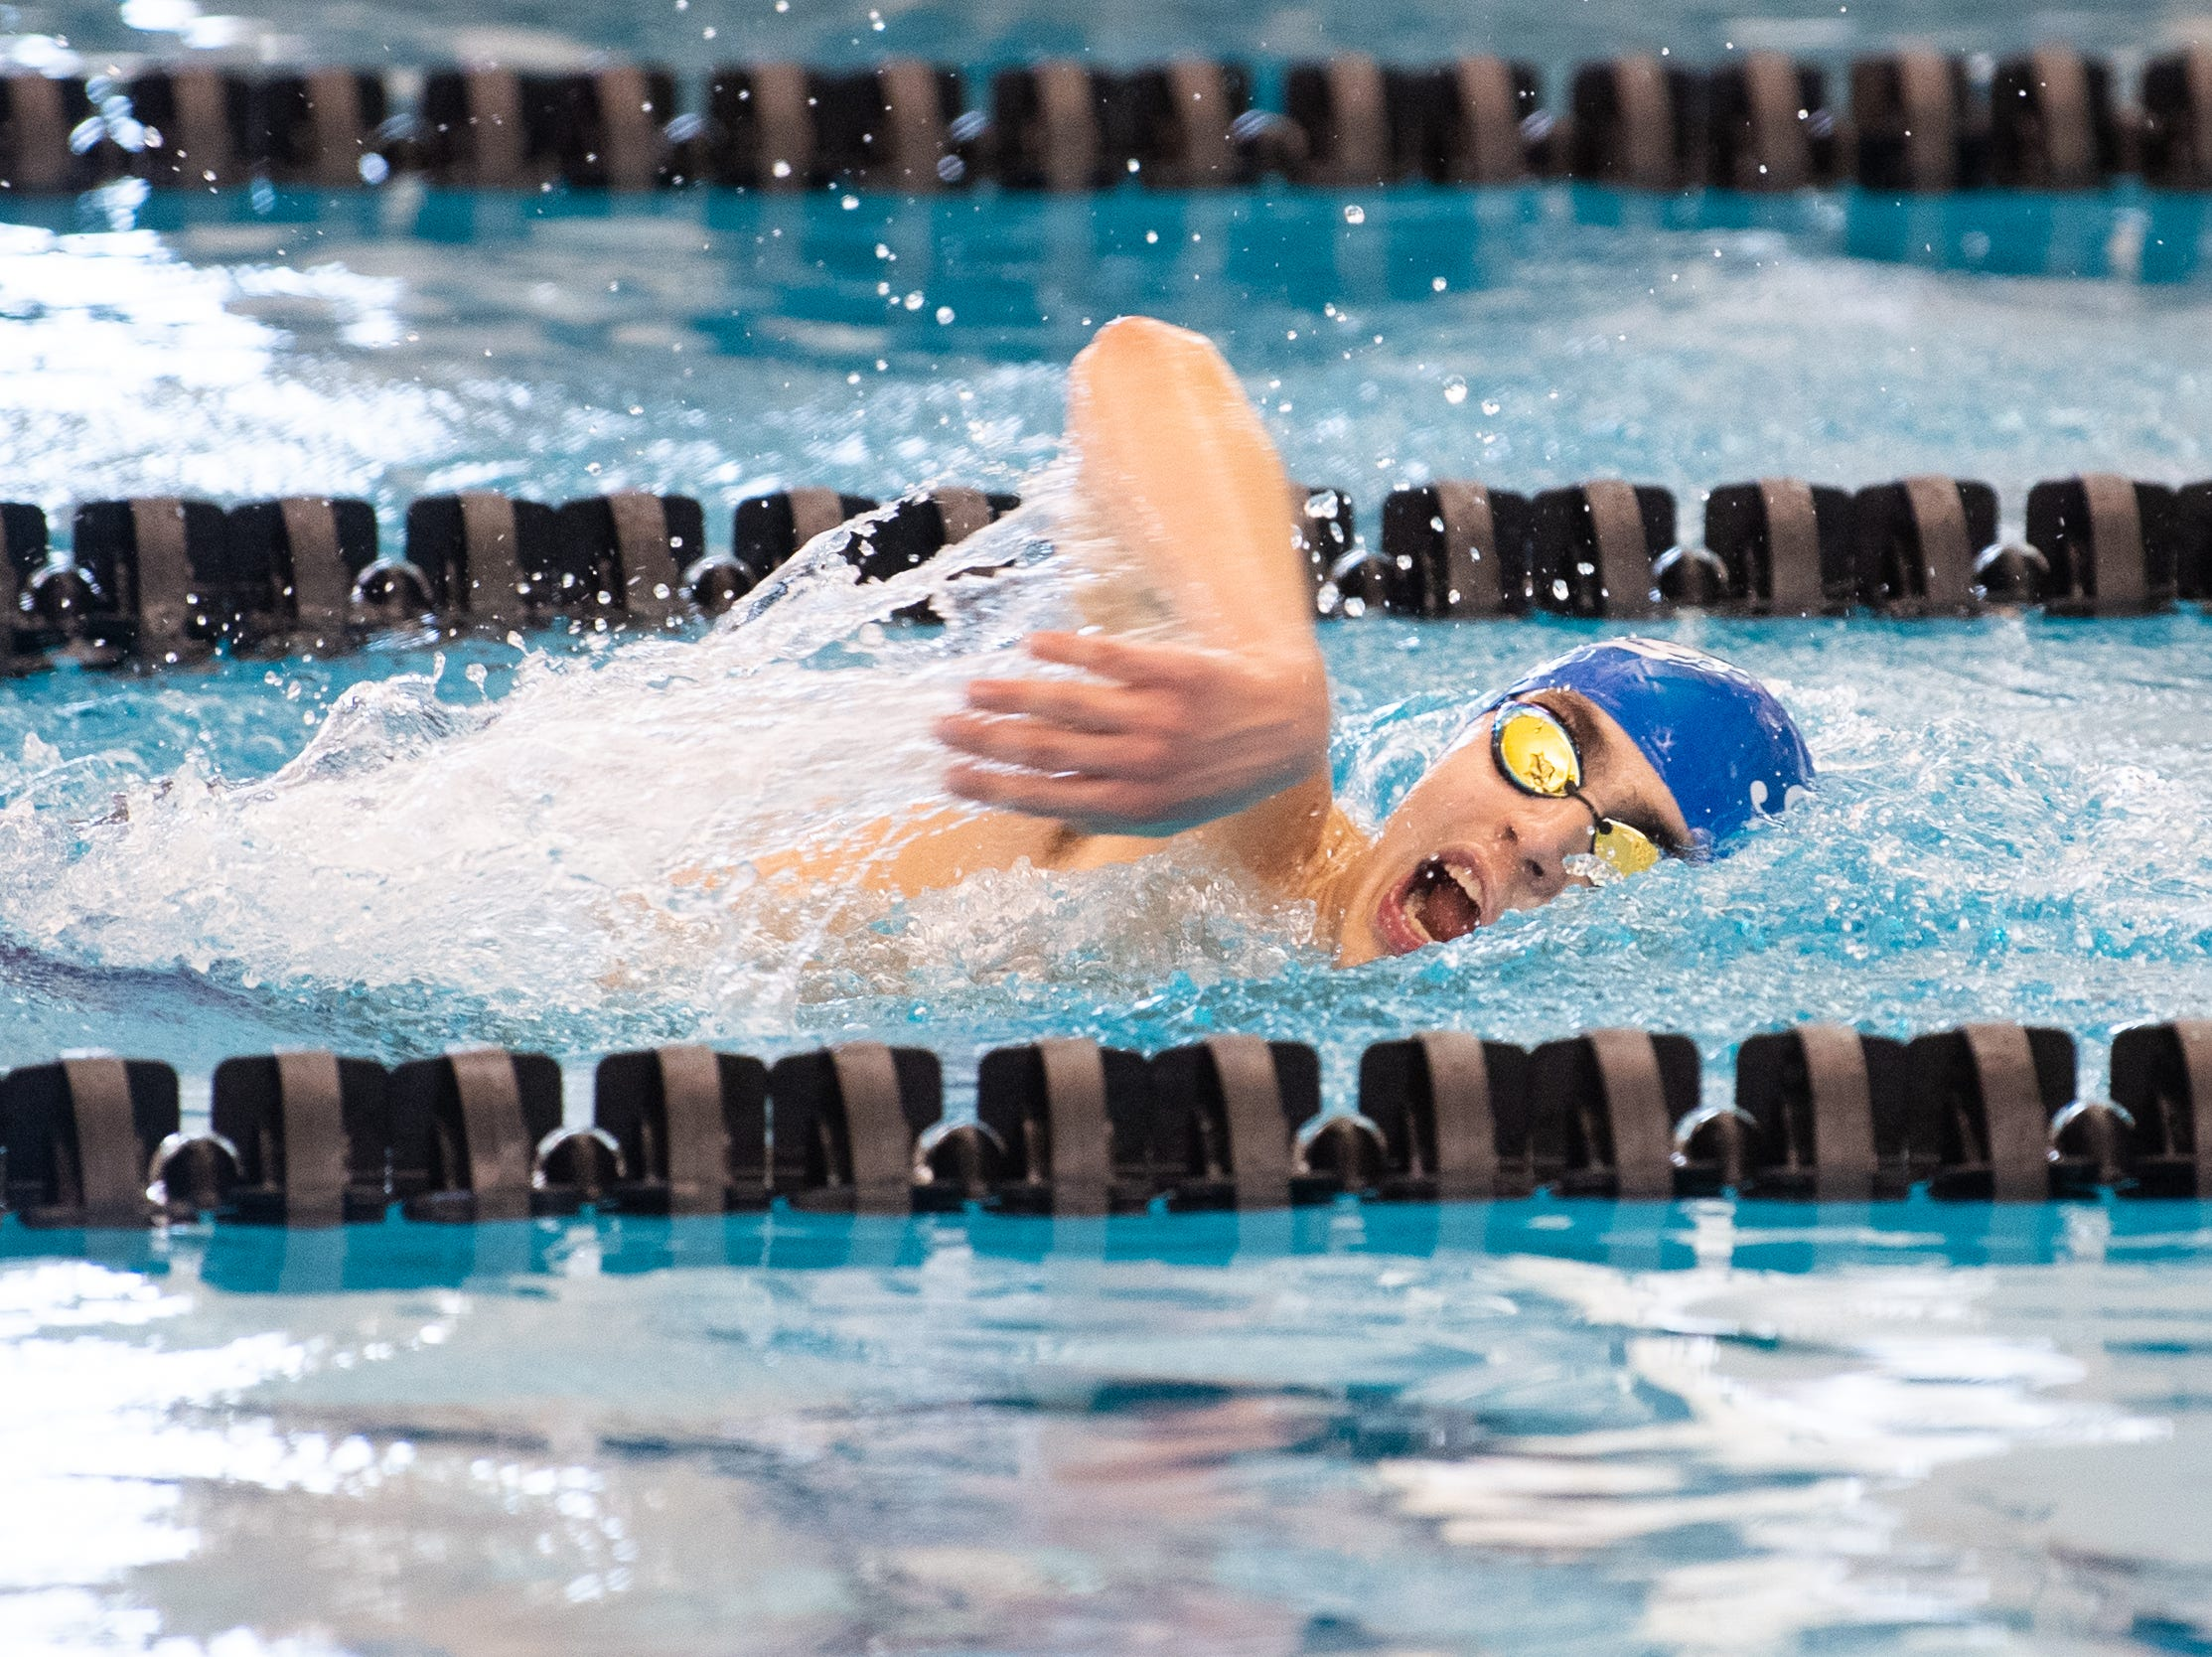 Ryan West of Spring Grove competes in the Boys 500 Yard Freestyle during the 2019 YAIAA Swimming and Diving Championships at Central York High School, February 9, 2019.